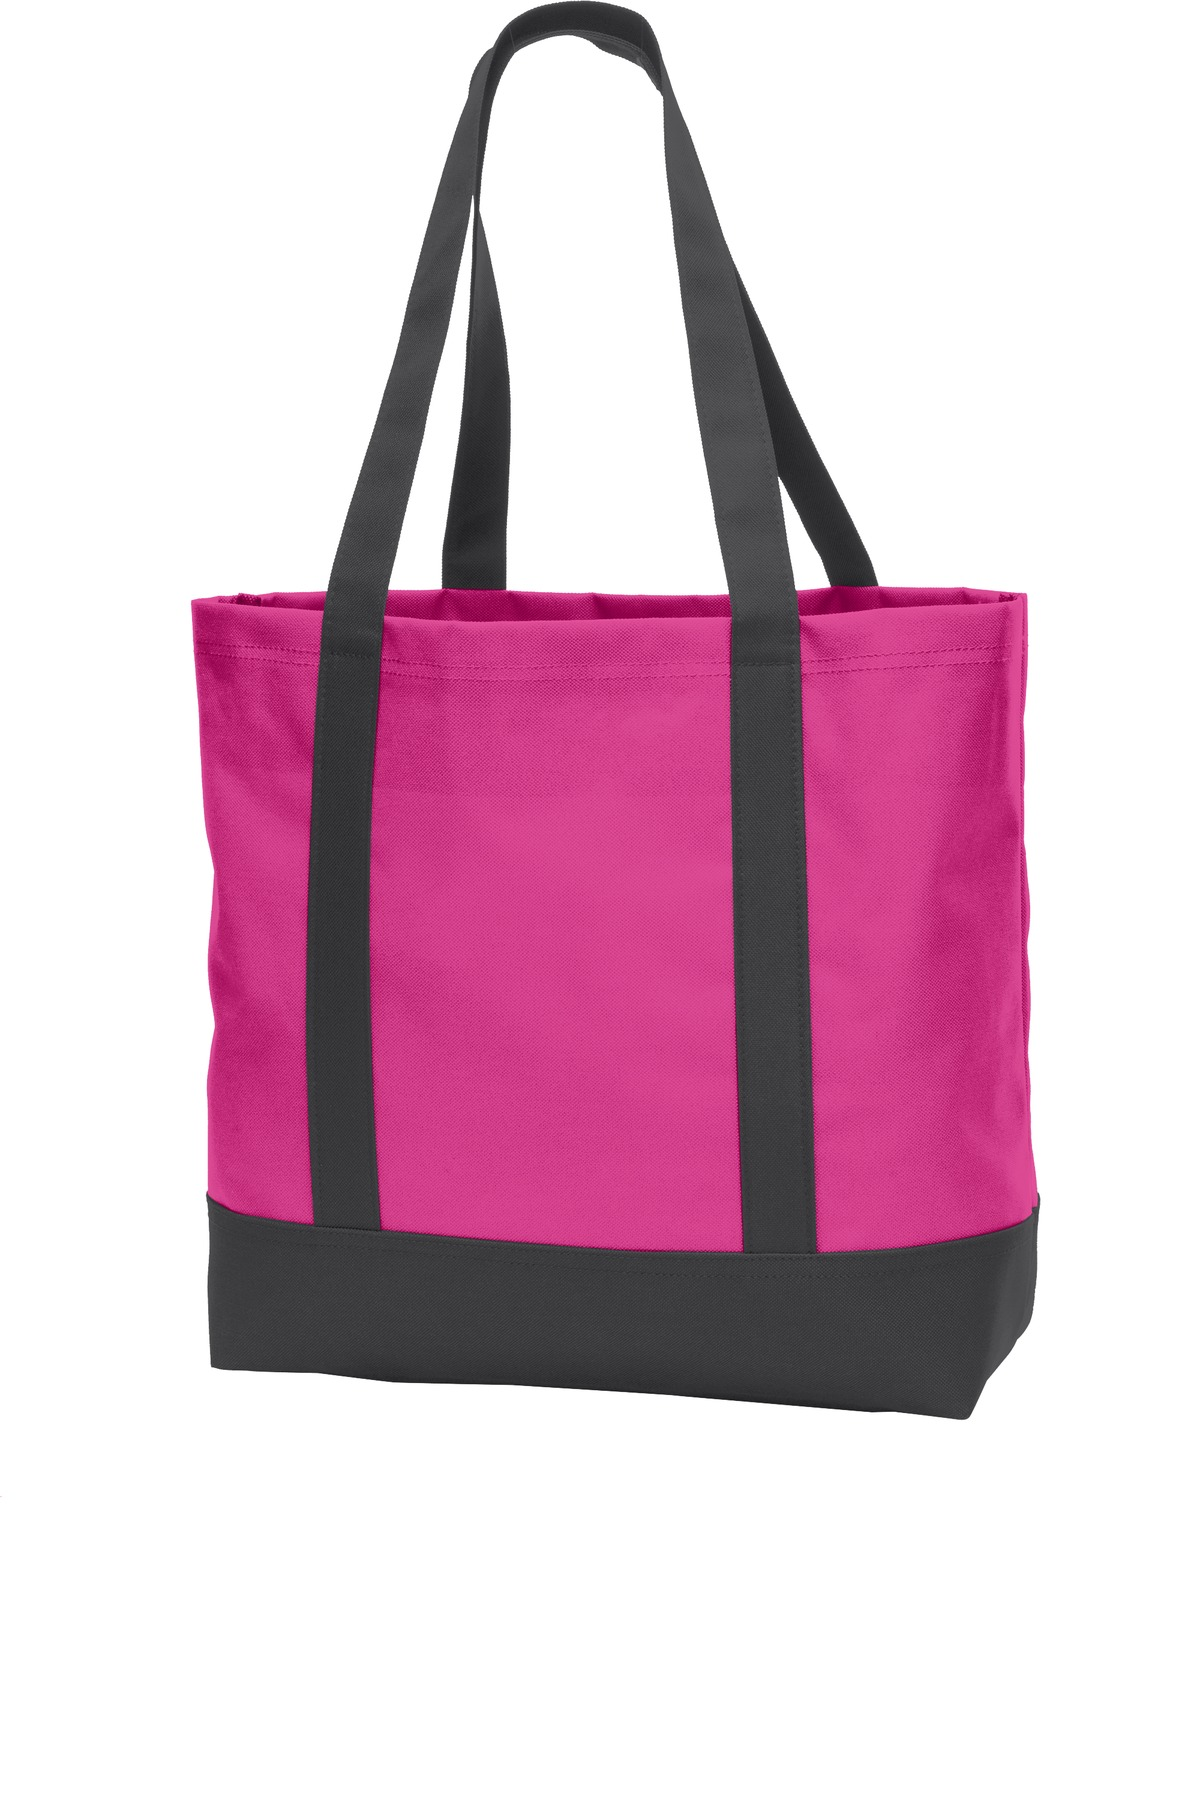 click to view Tropical Pink/ Dark Charcoal